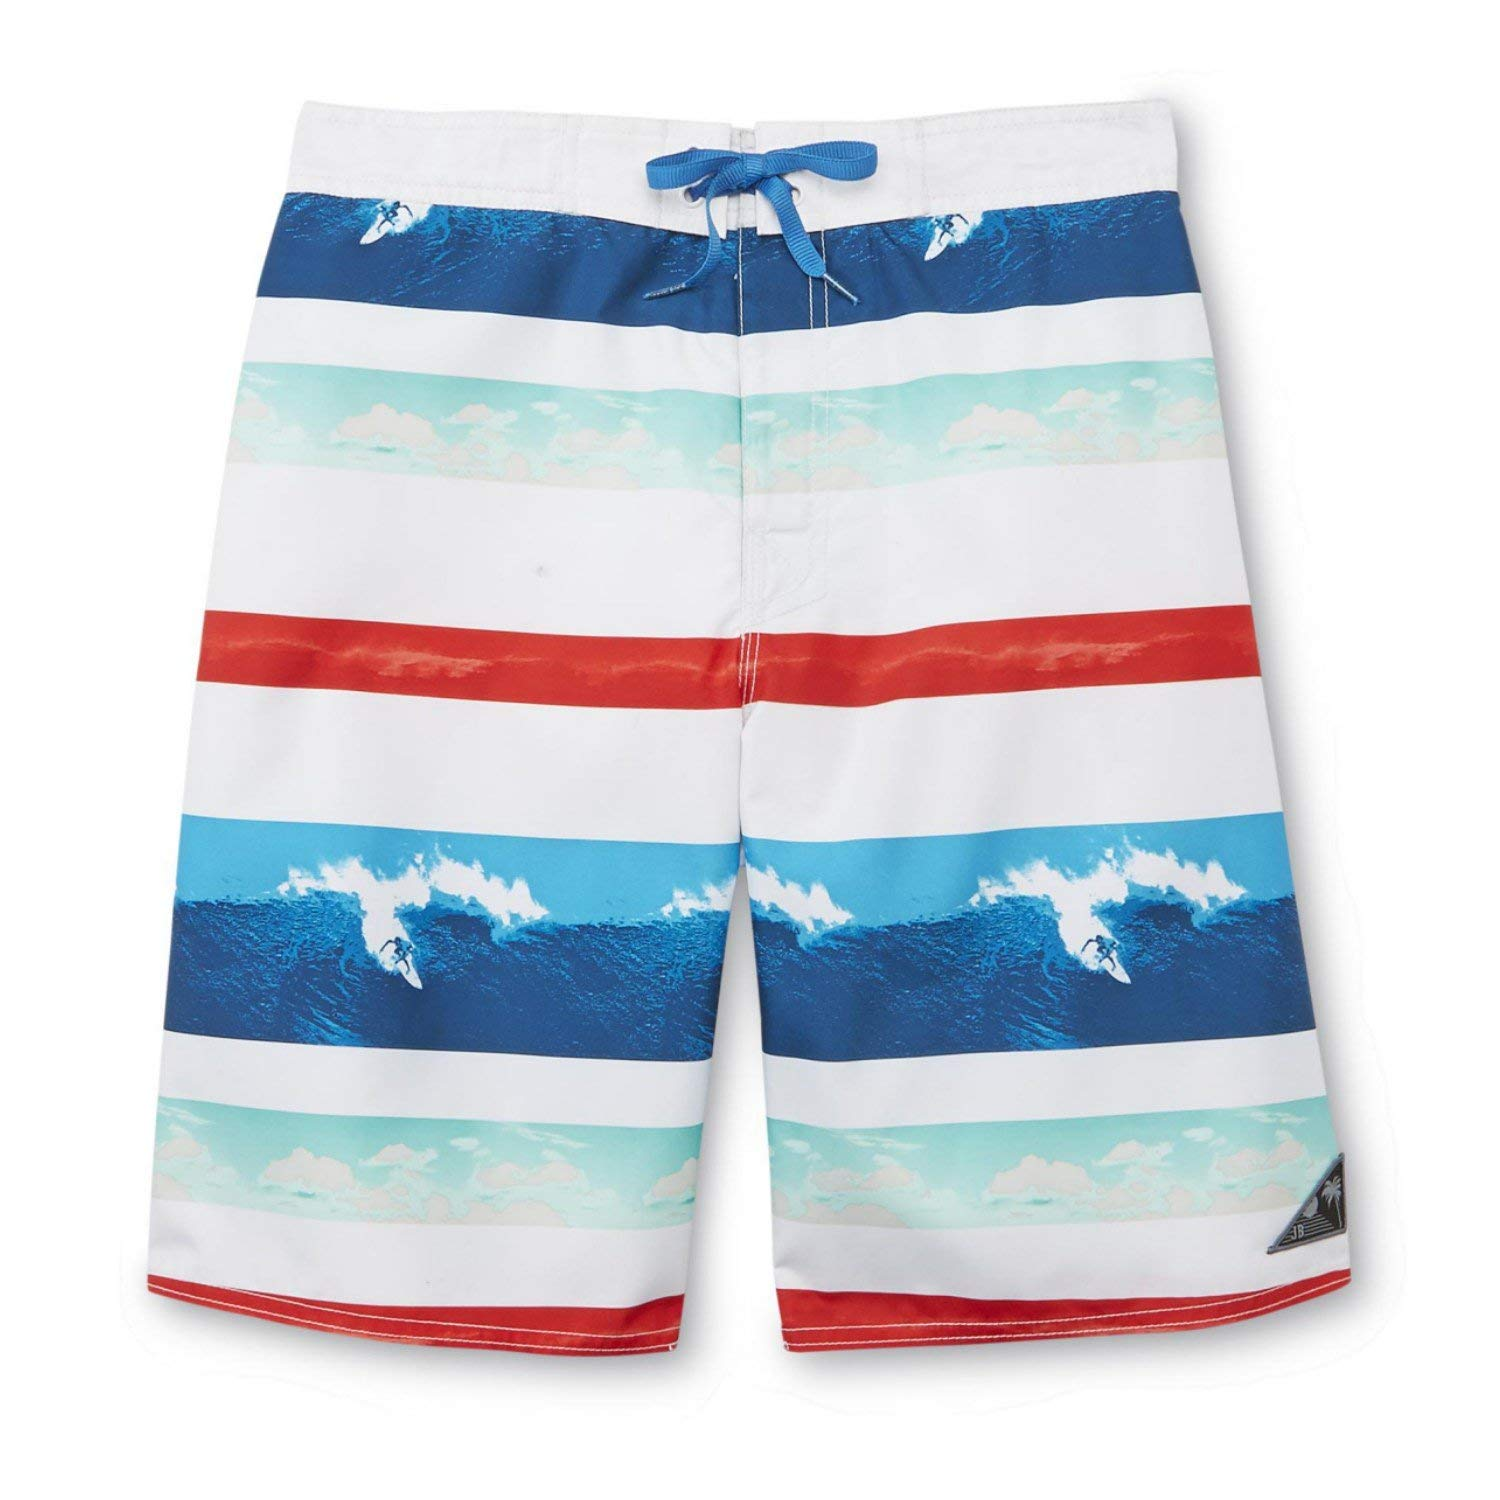 852617a1fd Get Quotations · Joe Boxer Mens Red/White/Blue Striped Surfing Board Shorts  Swim Trunks